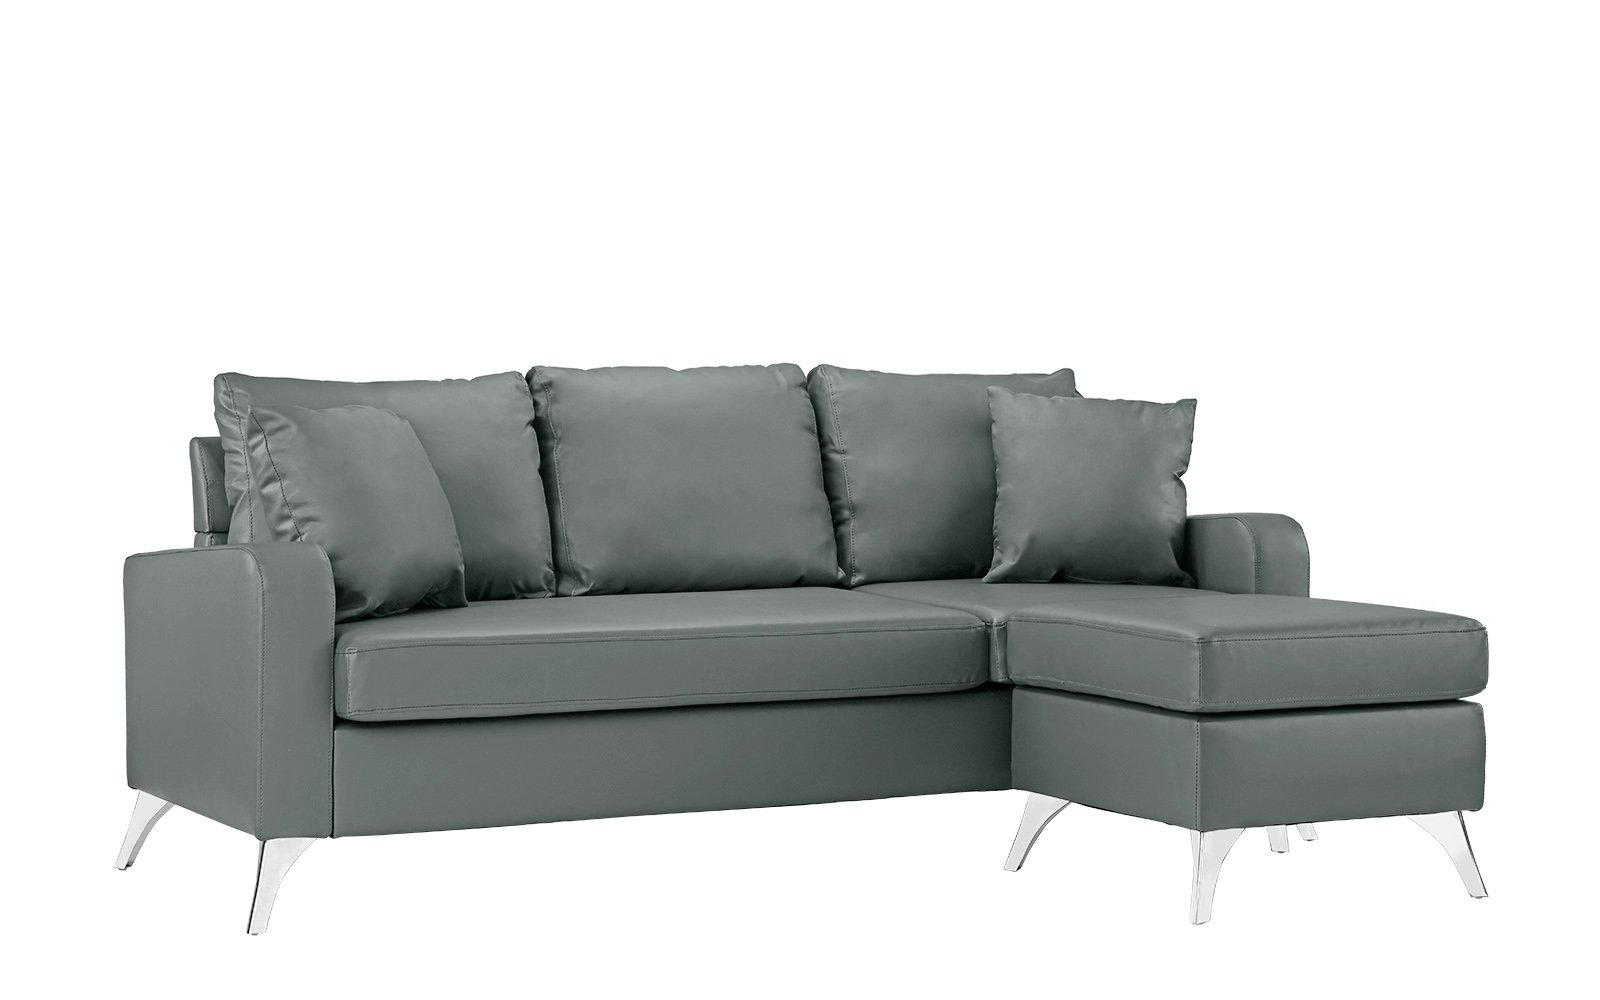 "Divano Roma Furniture Bonded Sectional, Light Grey - Bonded Leather small space reversible chaise sectional sofa Durable bonded leather upholstery with hardwood frame and chrome finish metal legs Measures: 76""W x 54""D x 34""H inches - sofas-couches, living-room-furniture, living-room - 61jn3oiSn4L -"